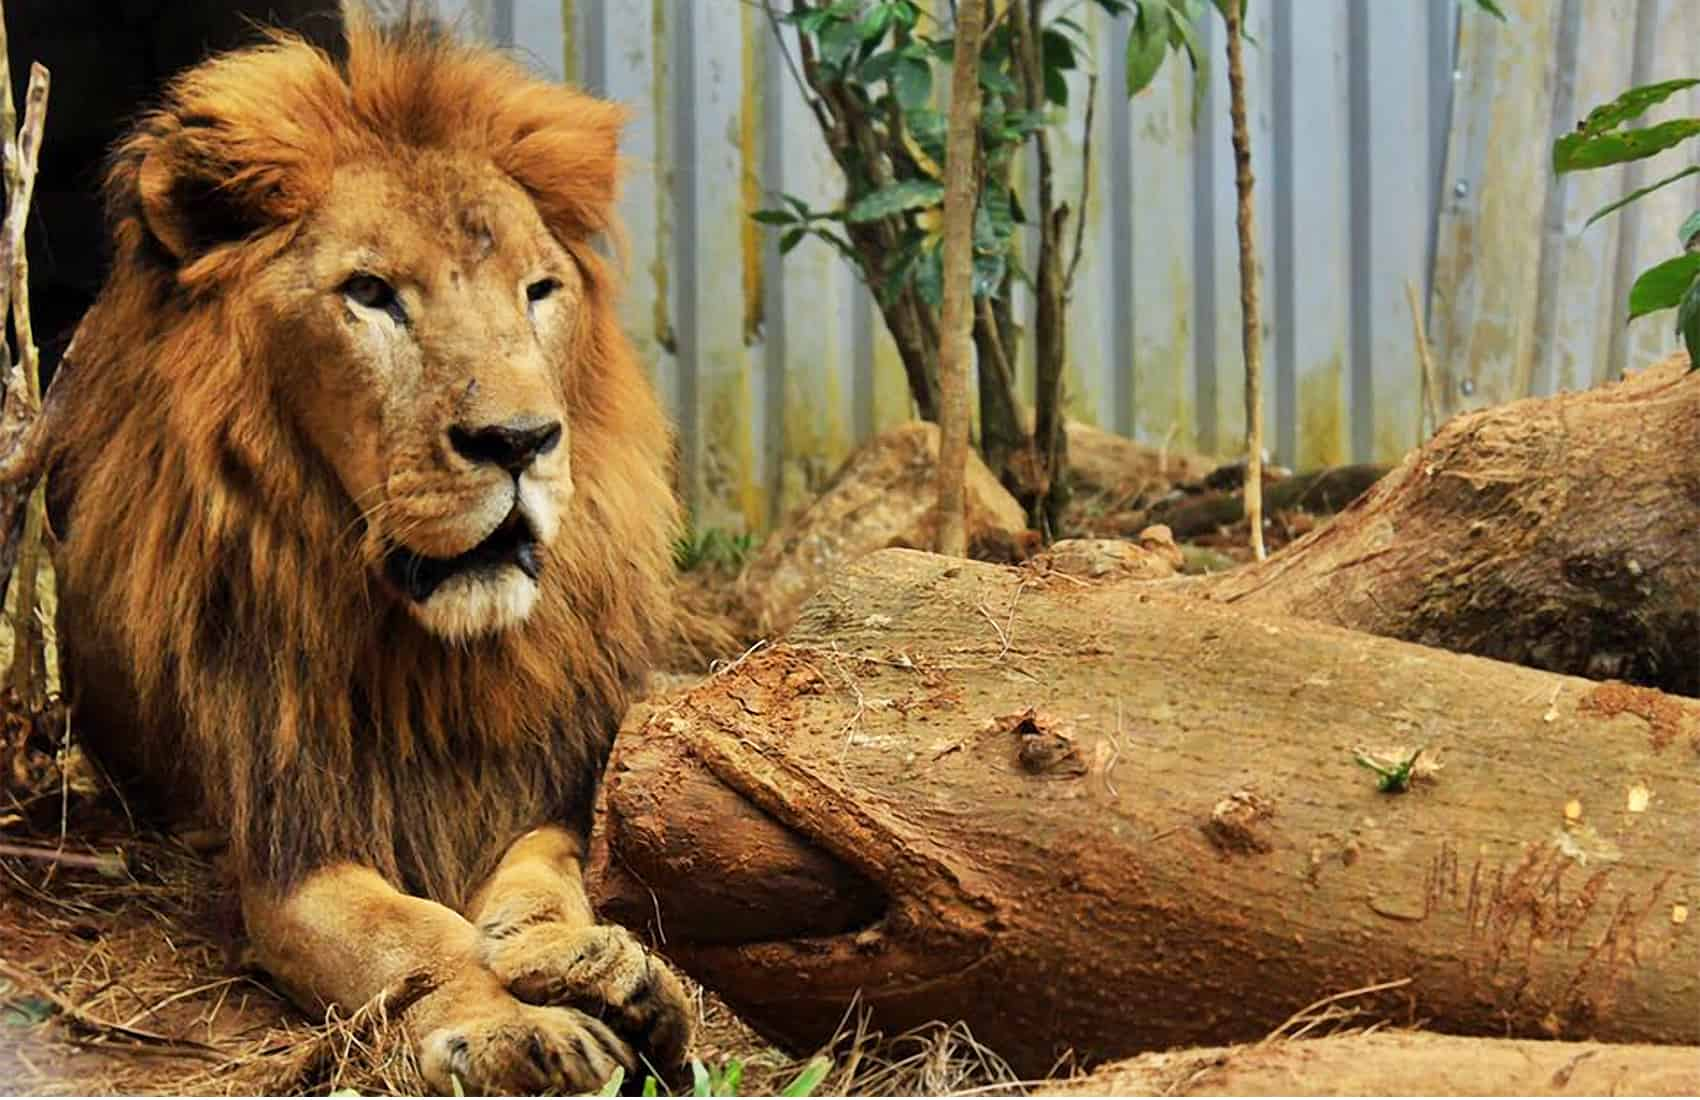 Kivú the lion. Feb. 2017.